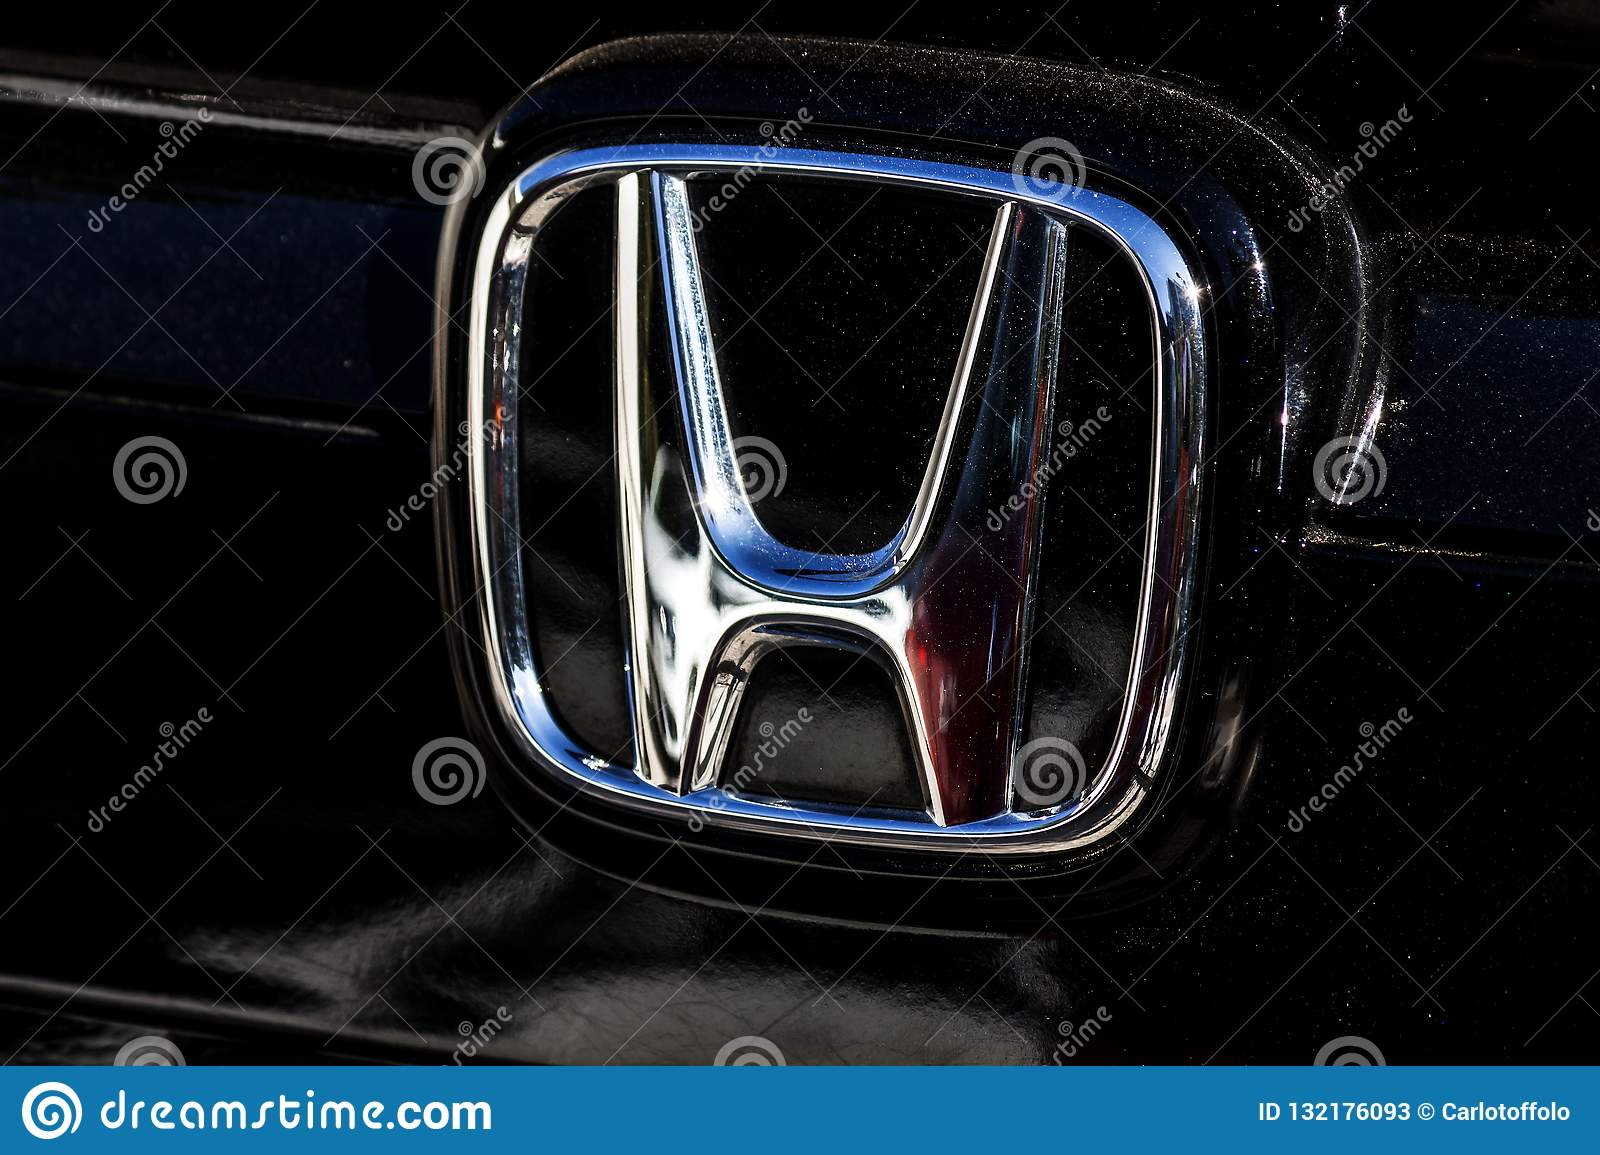 The Trademark Symbol Of Honda In The Frontside Of A Black Car Photography Editorial Stock Photo Image Of Shiny Engineering 132176093